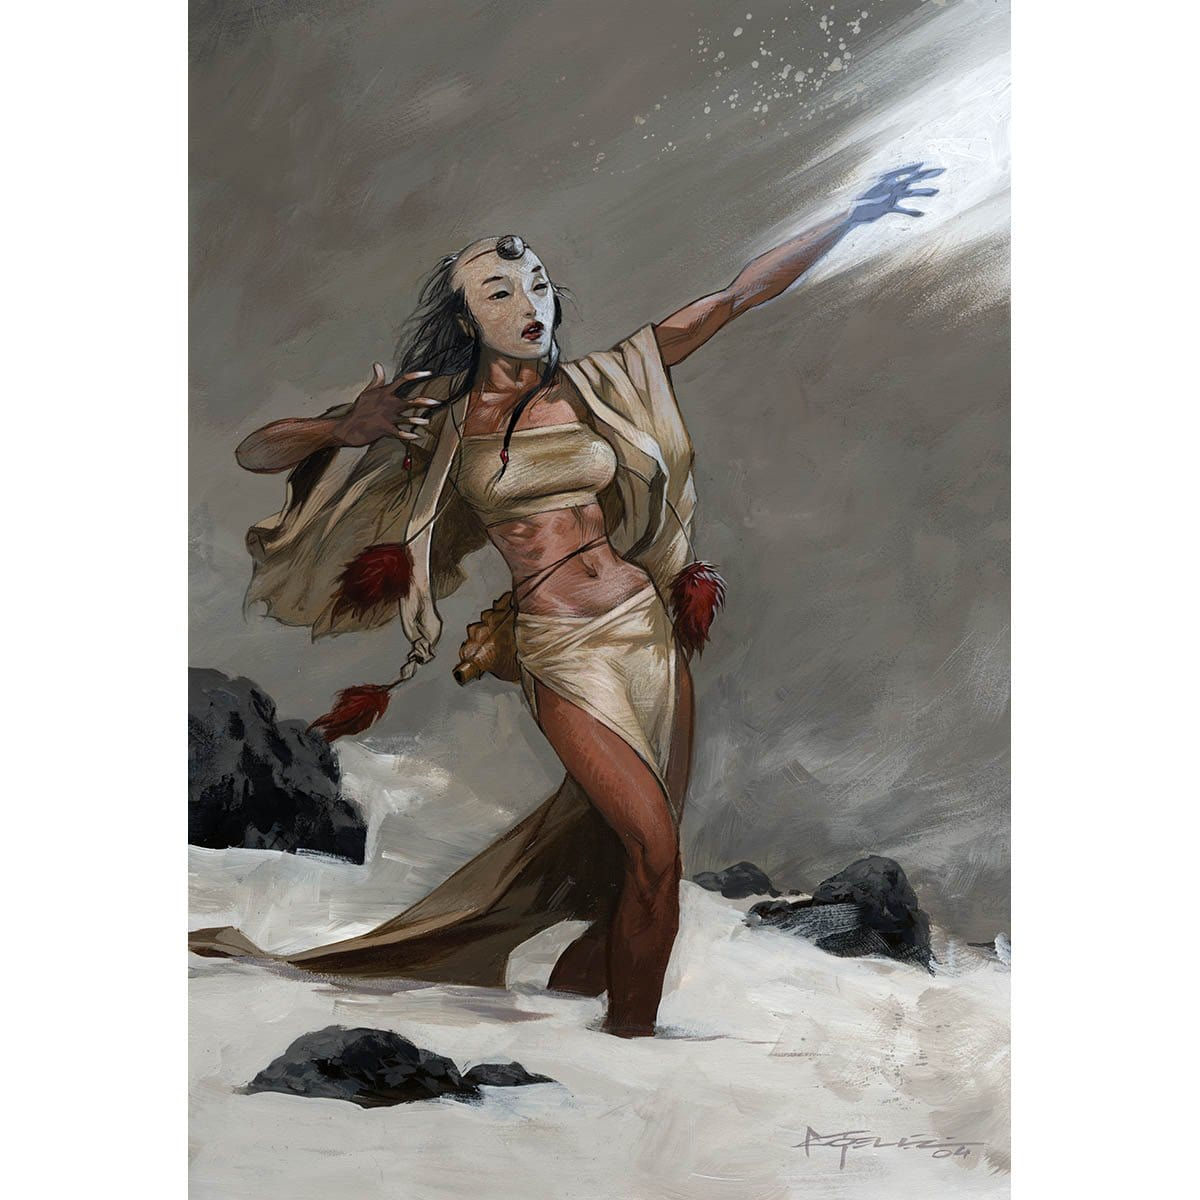 Frostwielder Print - Print - Original Magic Art - Accessories for Magic the Gathering and other card games